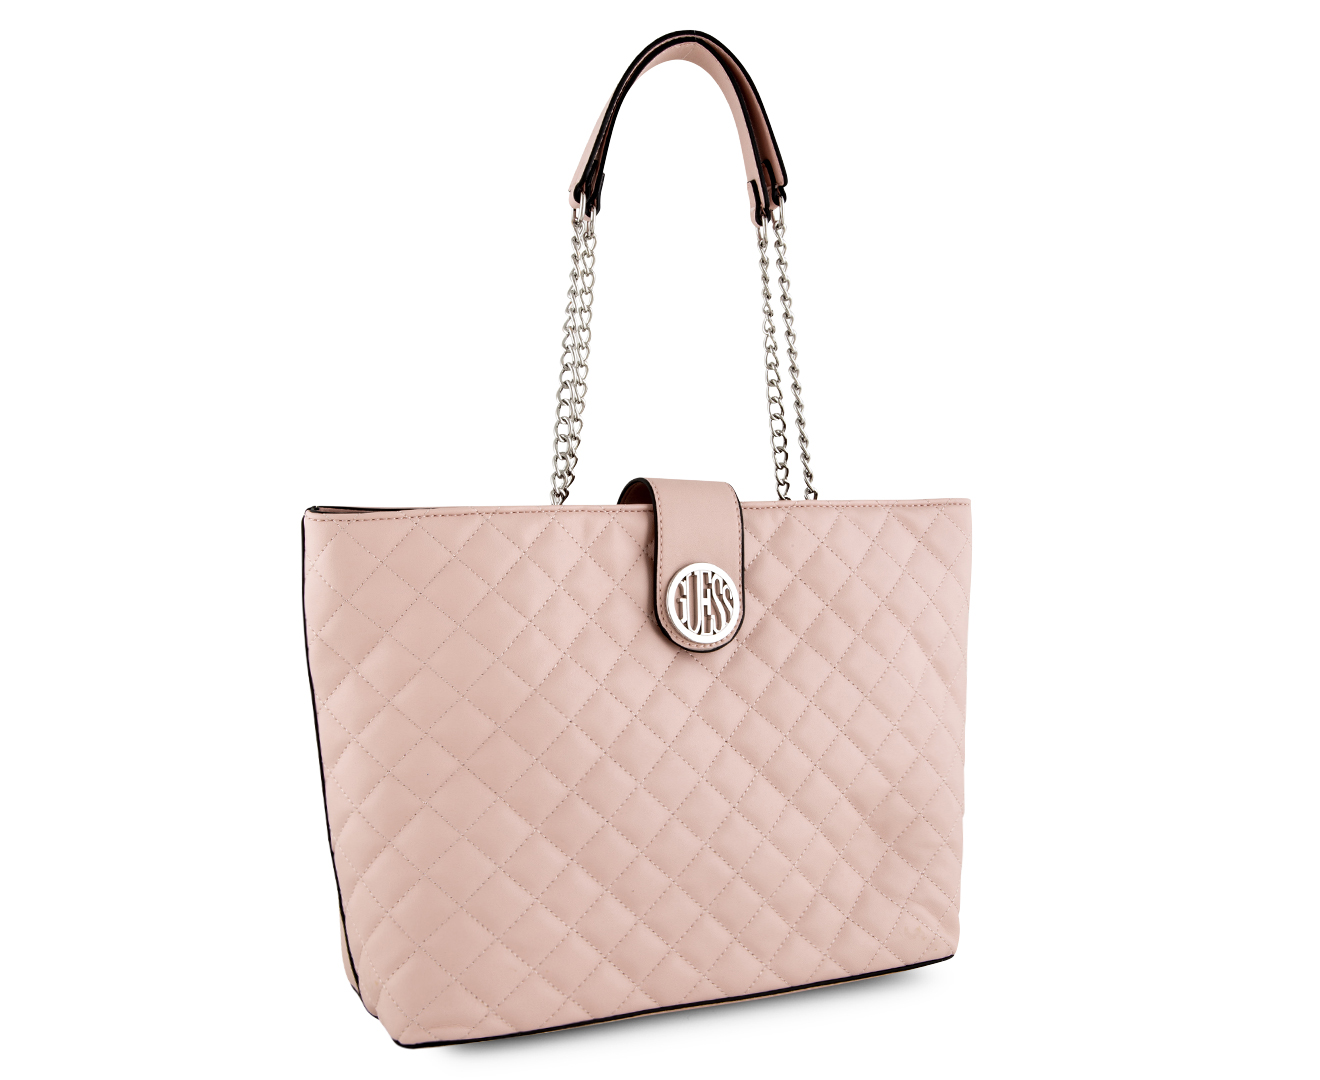 Buy Guess GUESS Womens Bags Top Quality Good Service Supply